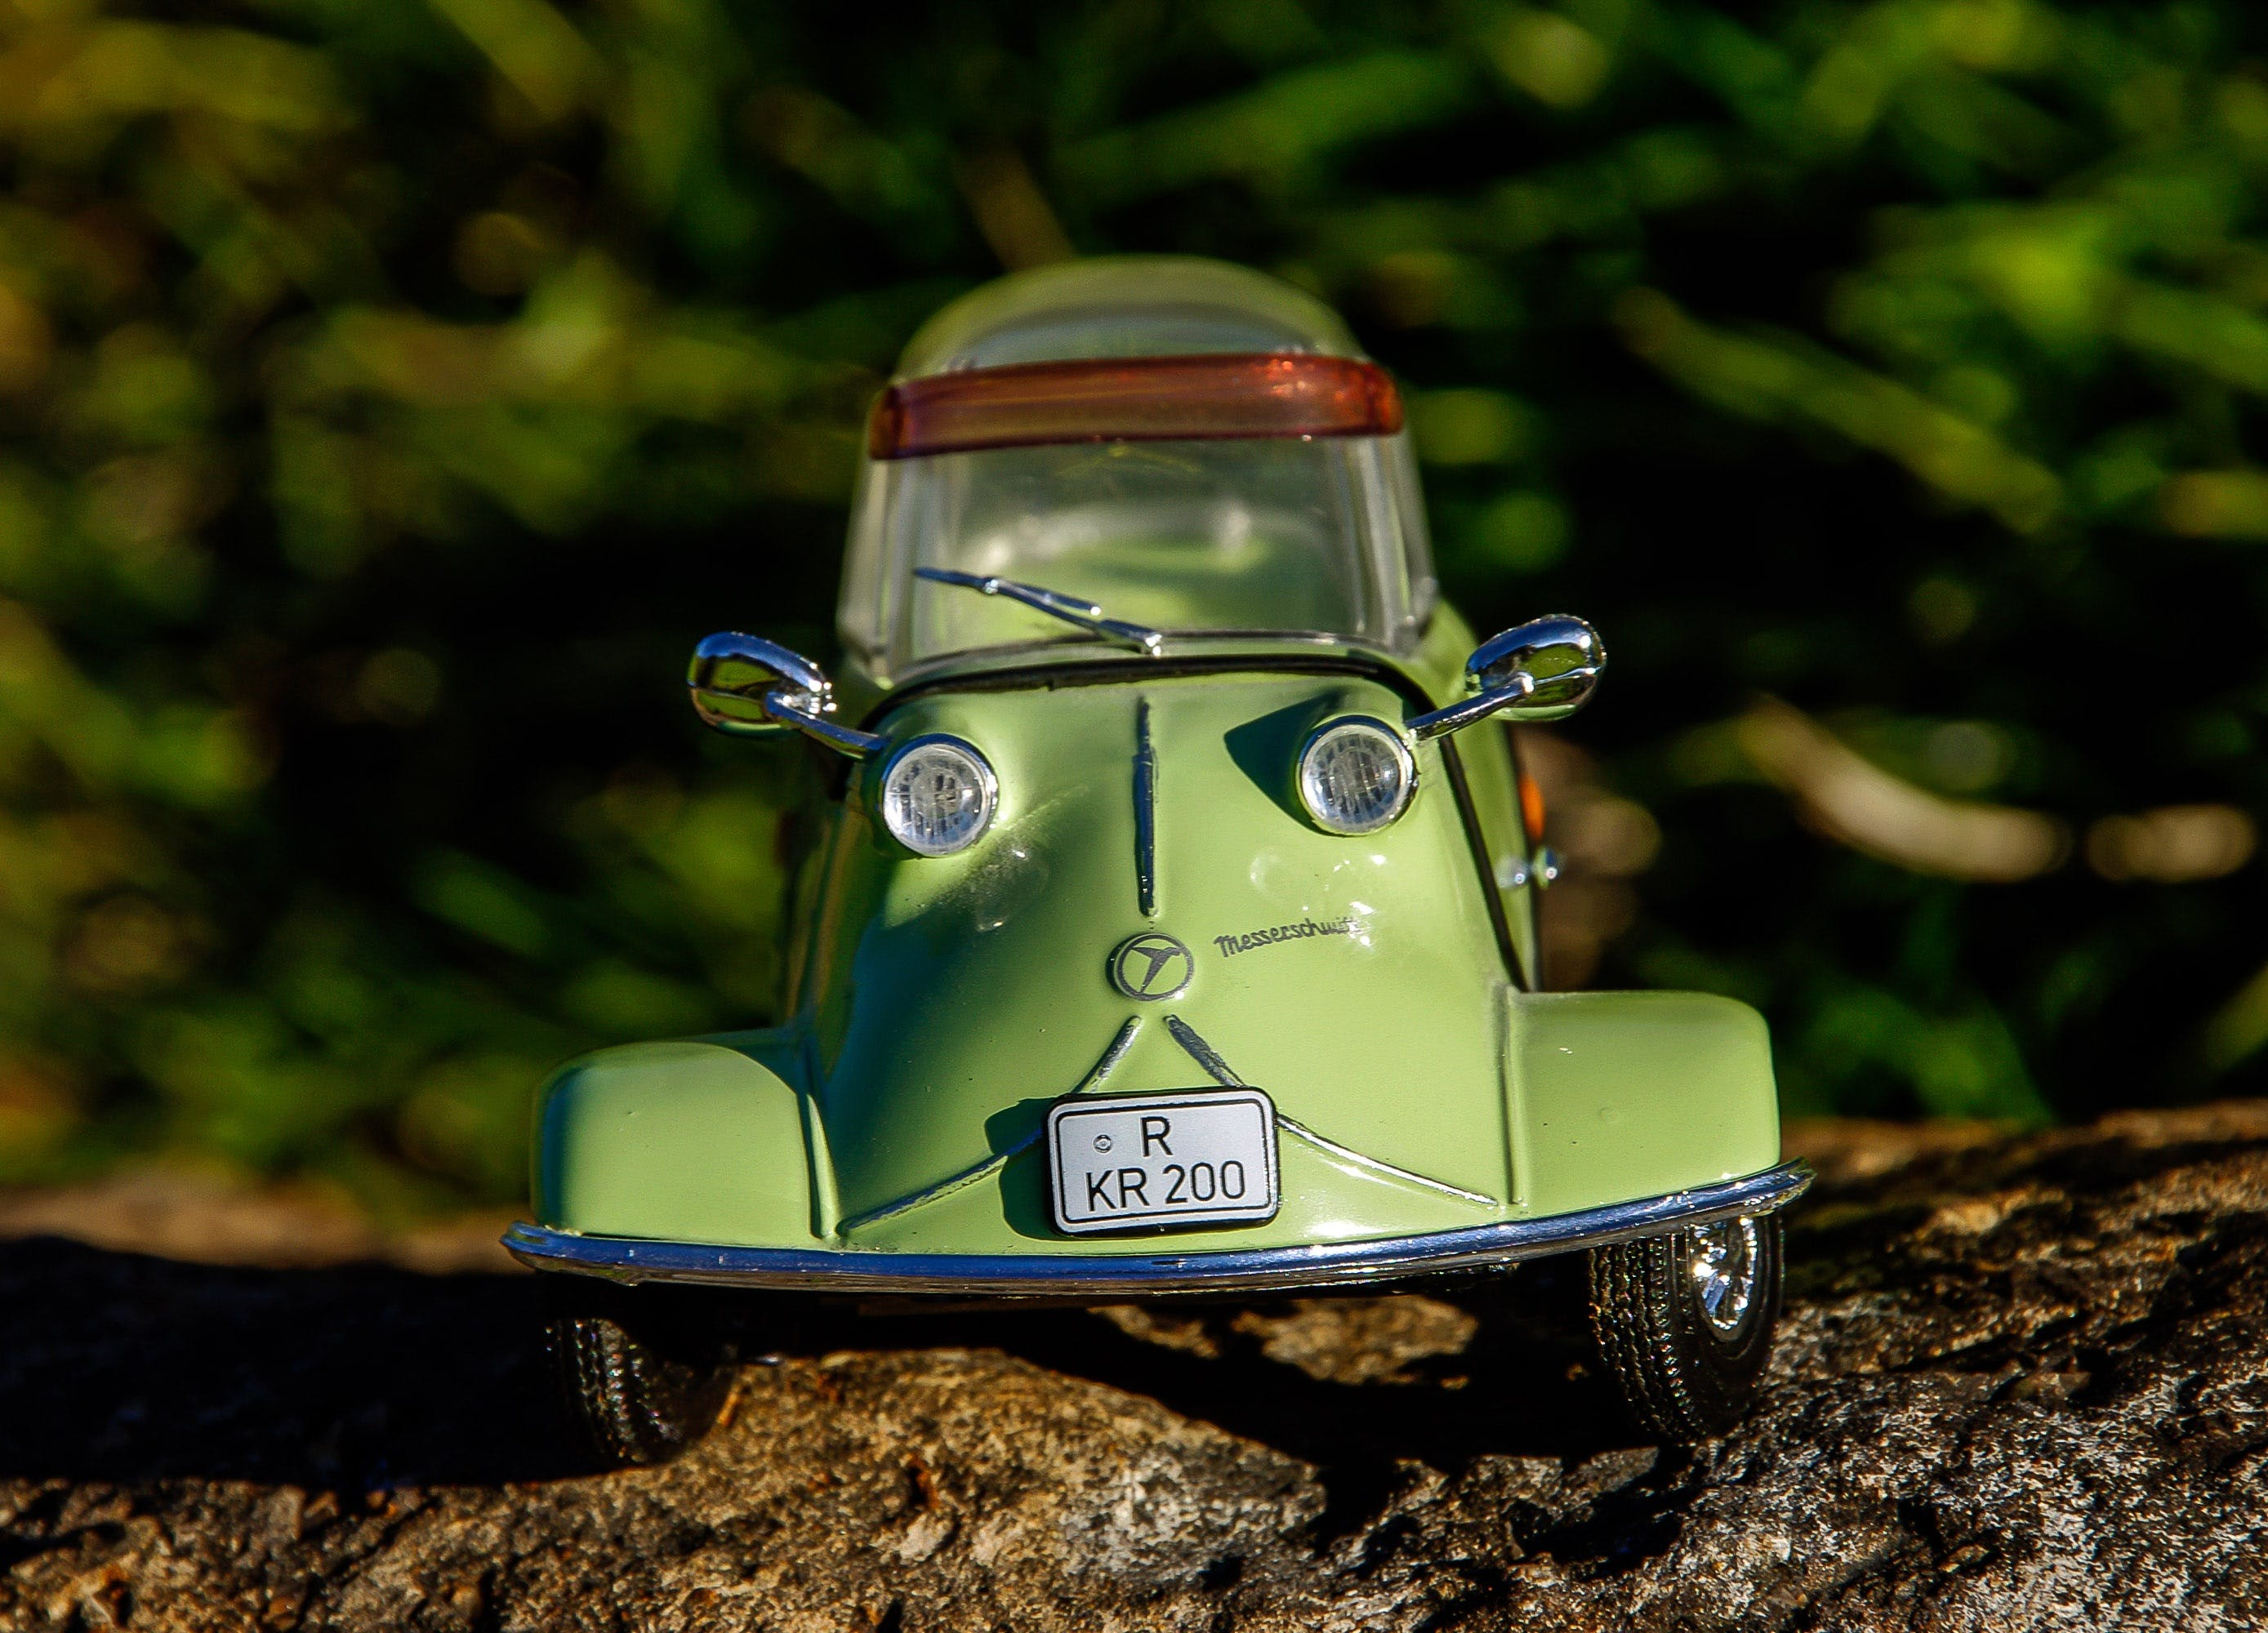 Green and Gray Miniature Car Toy